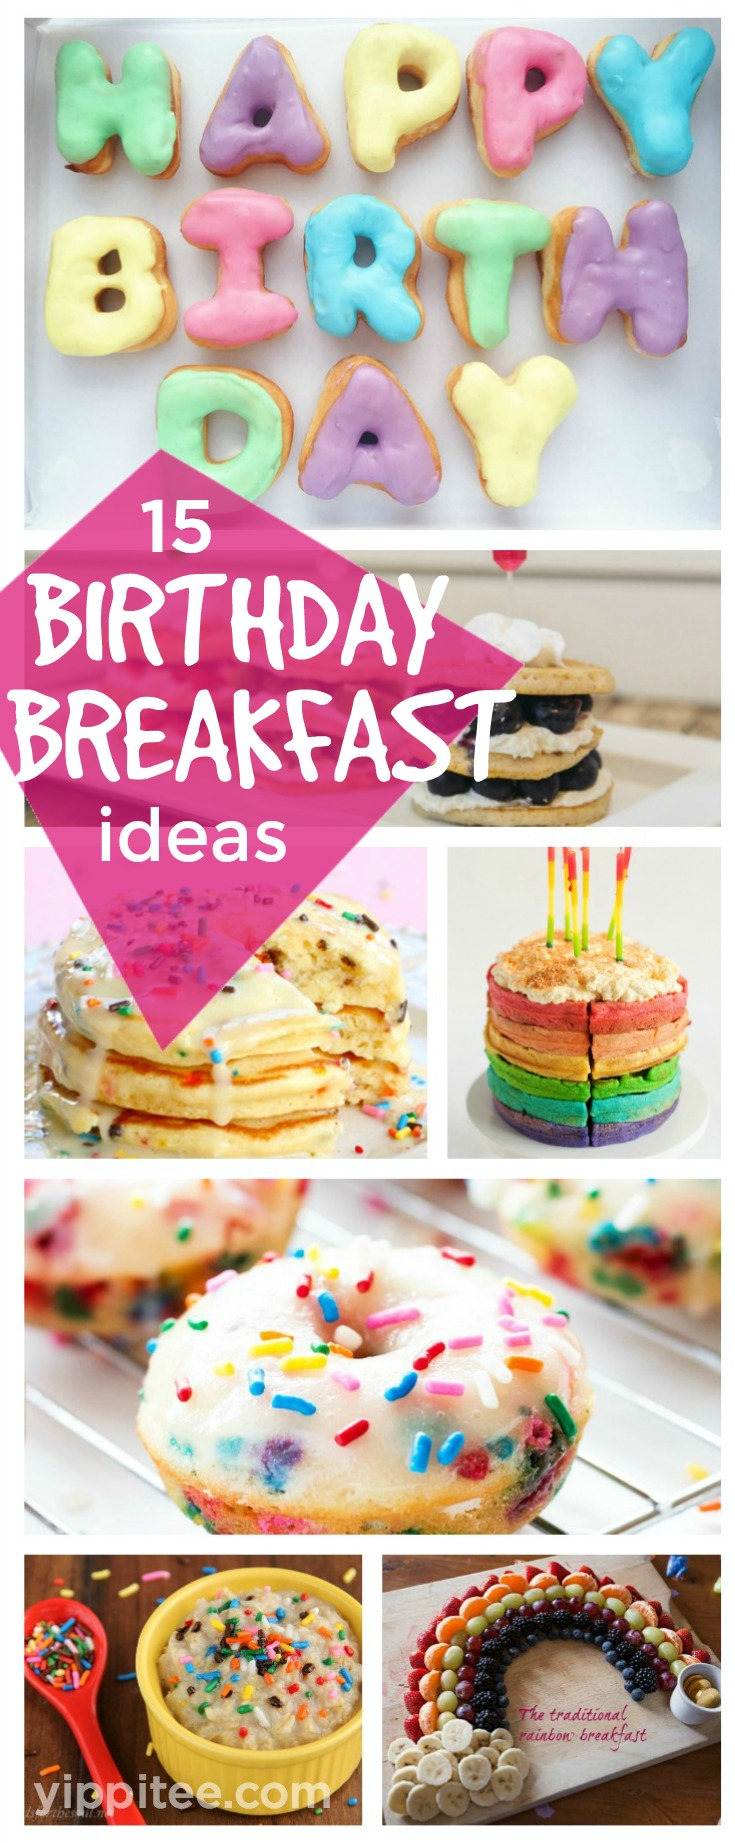 15 Birthday Breakfast Ideas You'll Want to Make Right Now | Delicious and fun birthday breakfast ideas for babies, toddlers, and big kids too. Including both indulgently sweet and healthy unique breakfast options. #birthdaybreakfast #birthday #toddlerbirthday